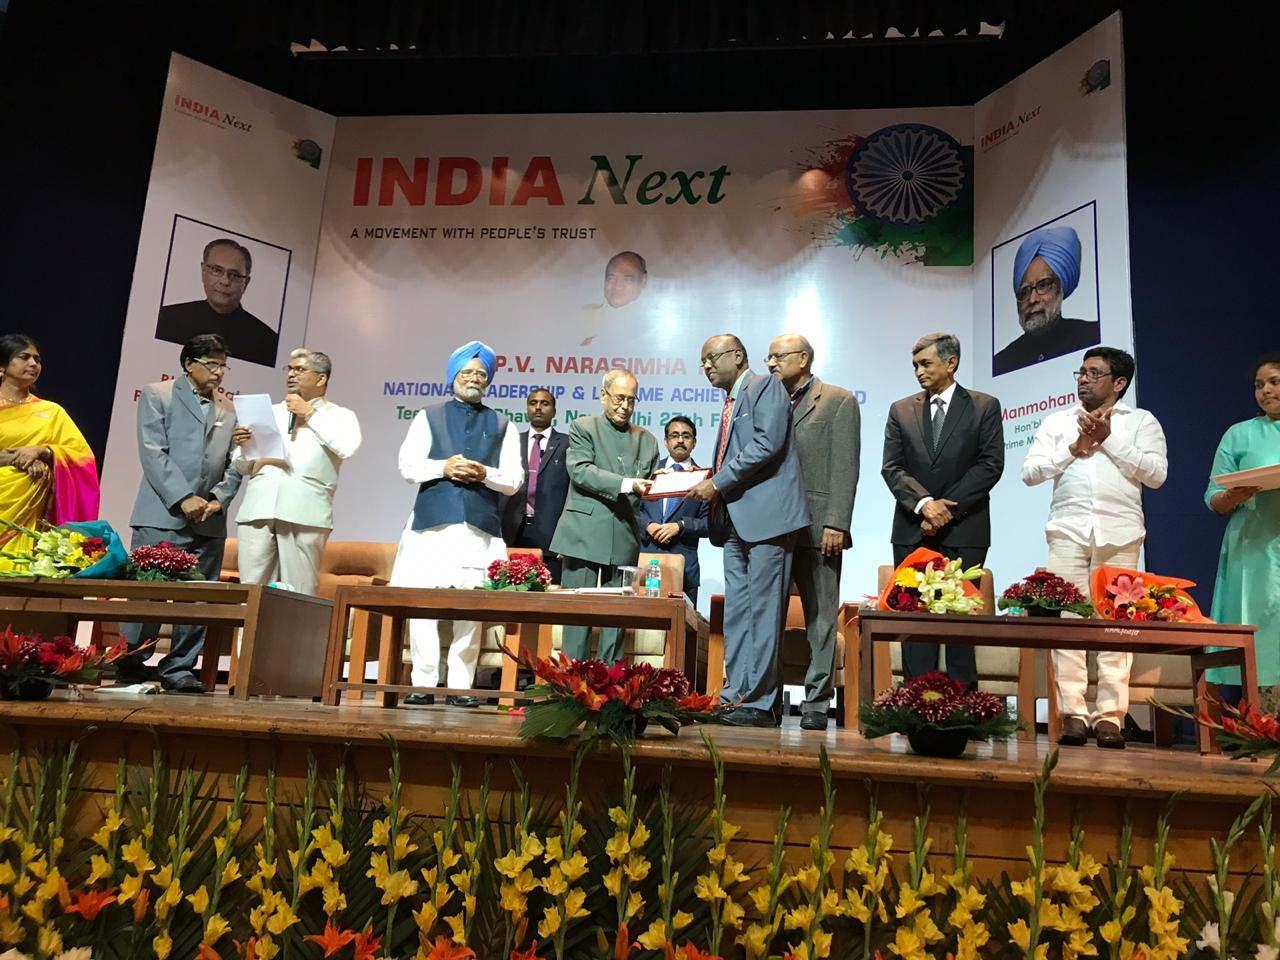 Award from president of india